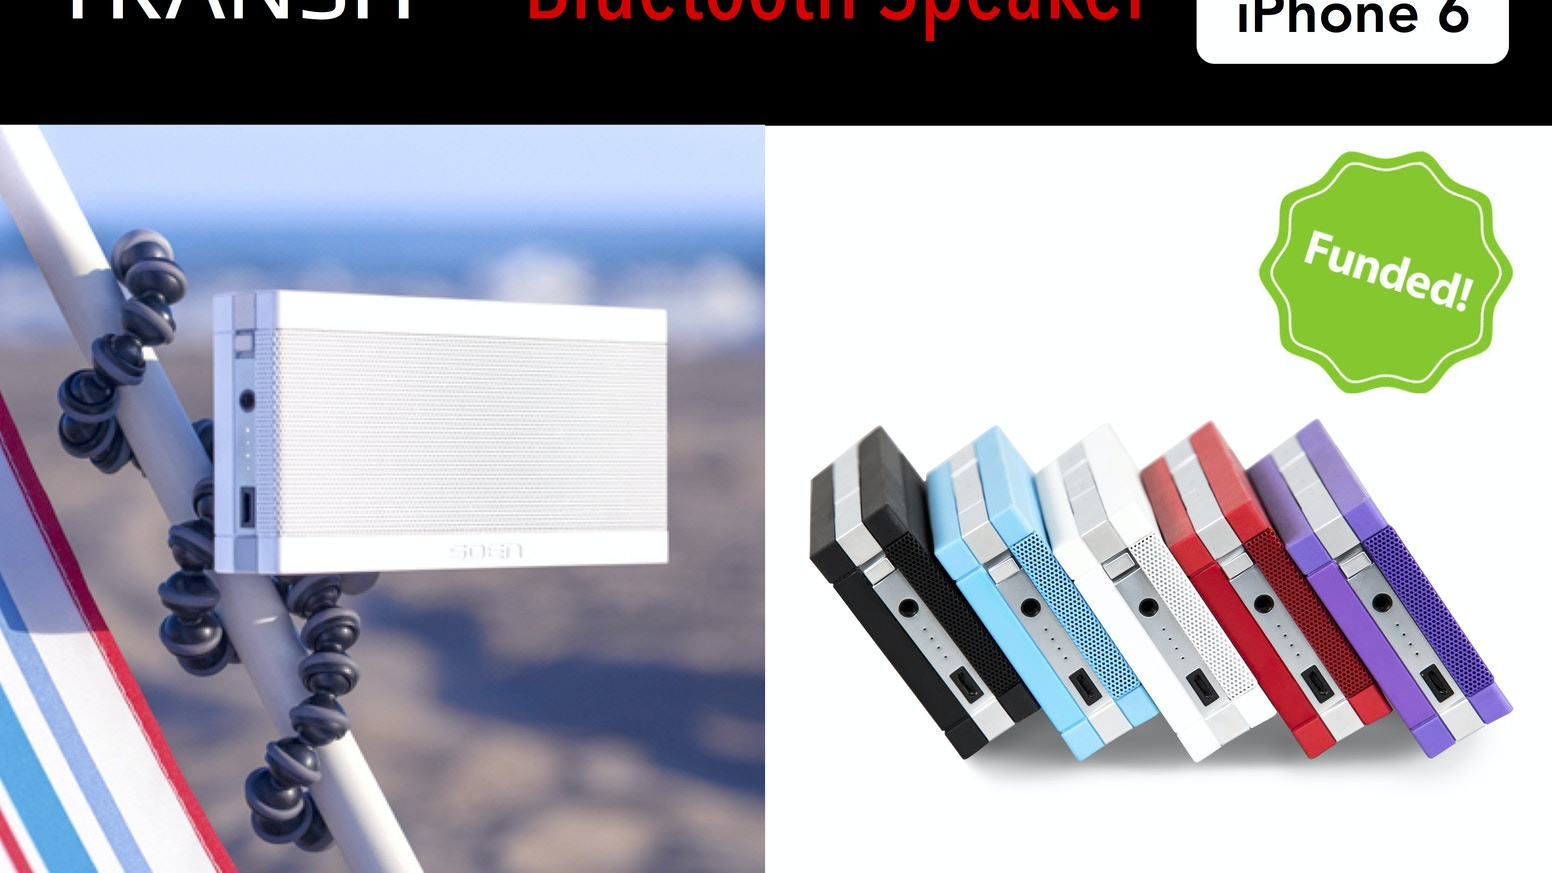 Portable, Mounting Bluetooth Speaker  Works with iPhone 6 by